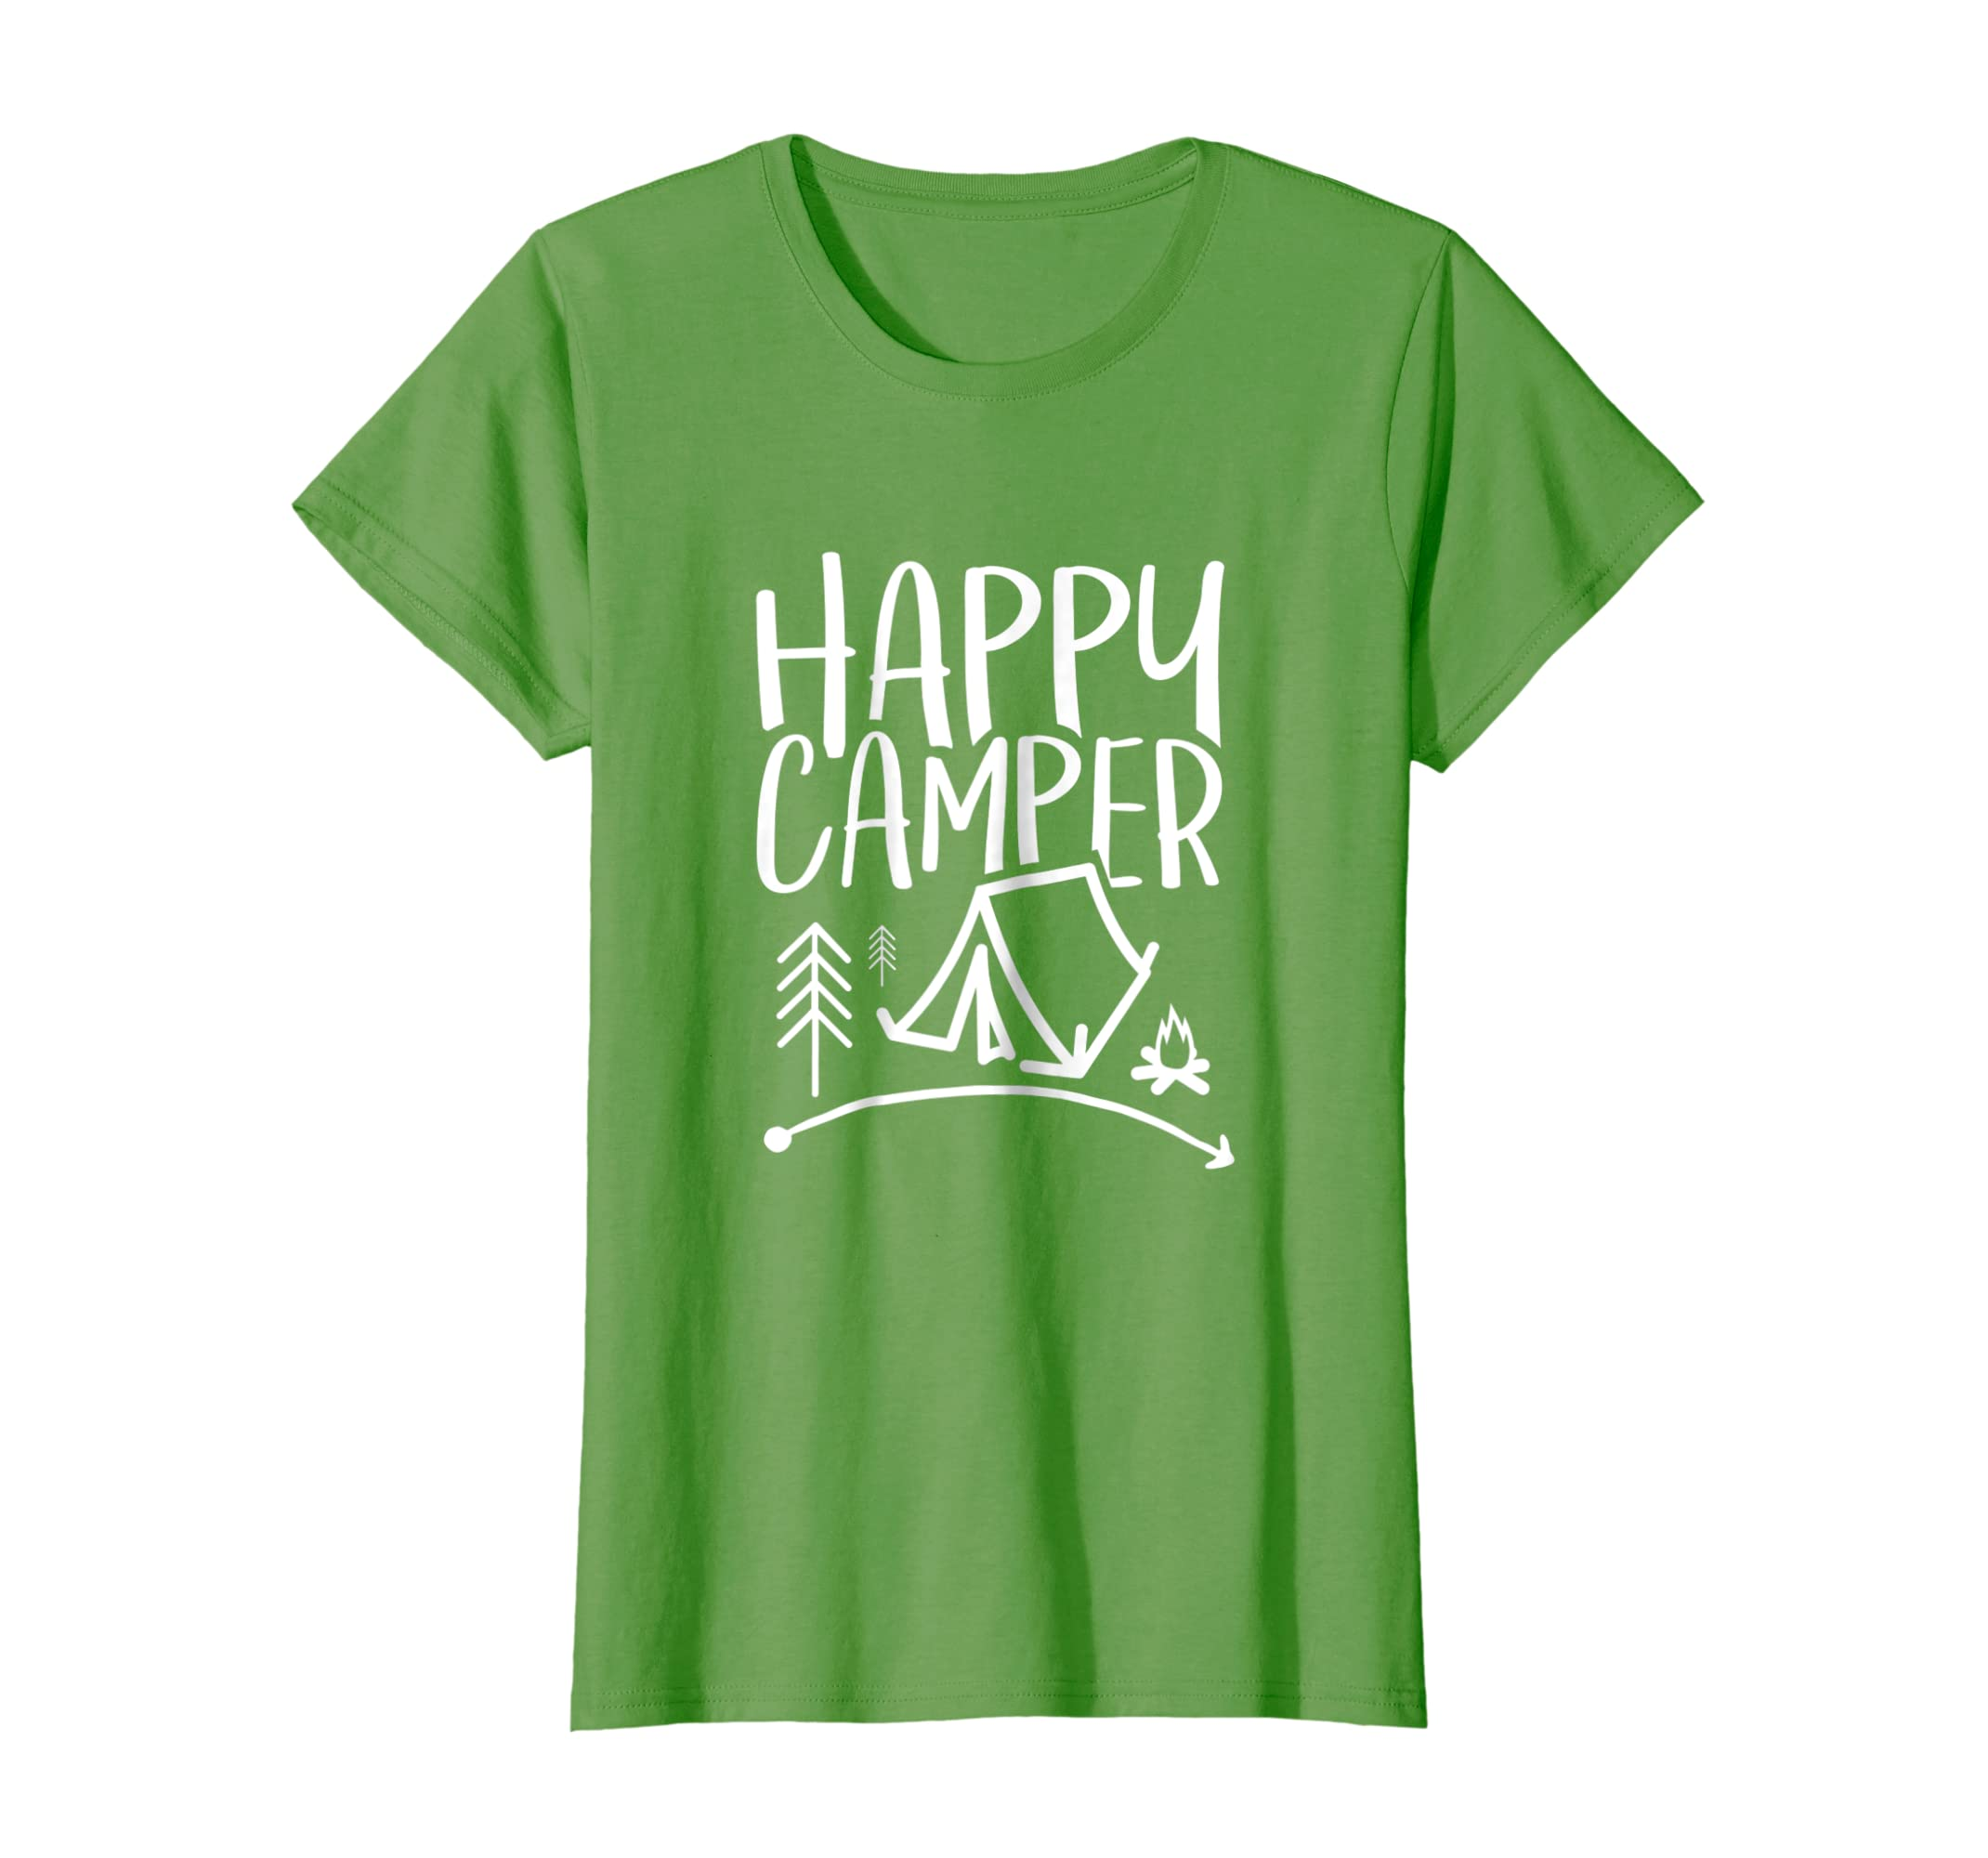 120800470871 Amazon.com  Happy Camper - Camping T-Shirt for Men